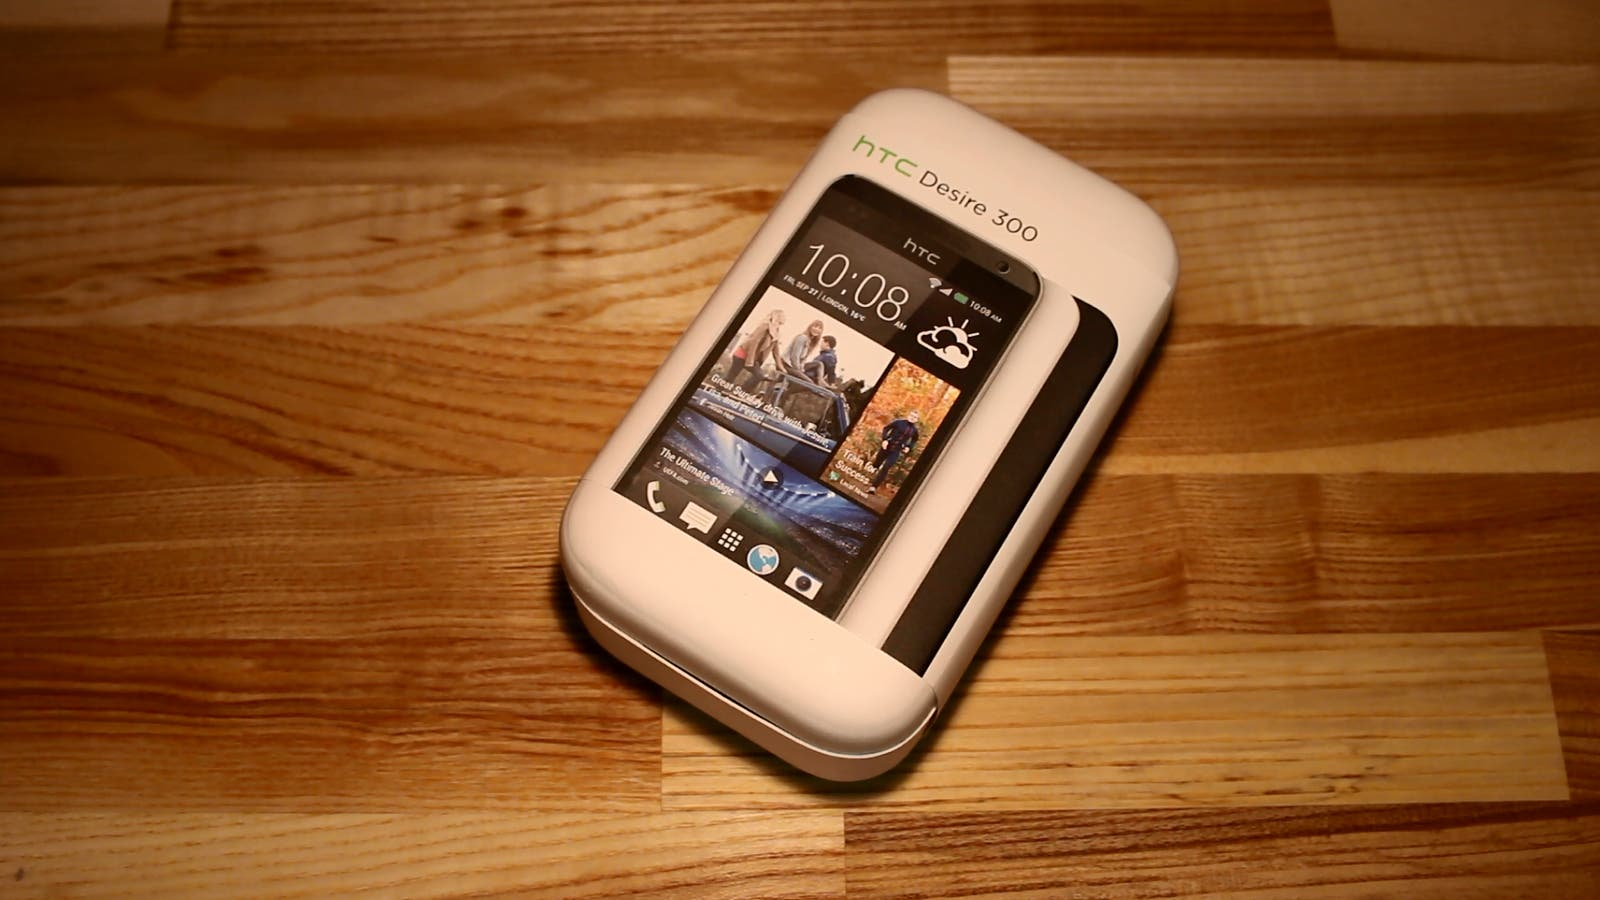 HTC Desire 300: Einsteiger-Smartphone im Unboxing- und Hands on-Video